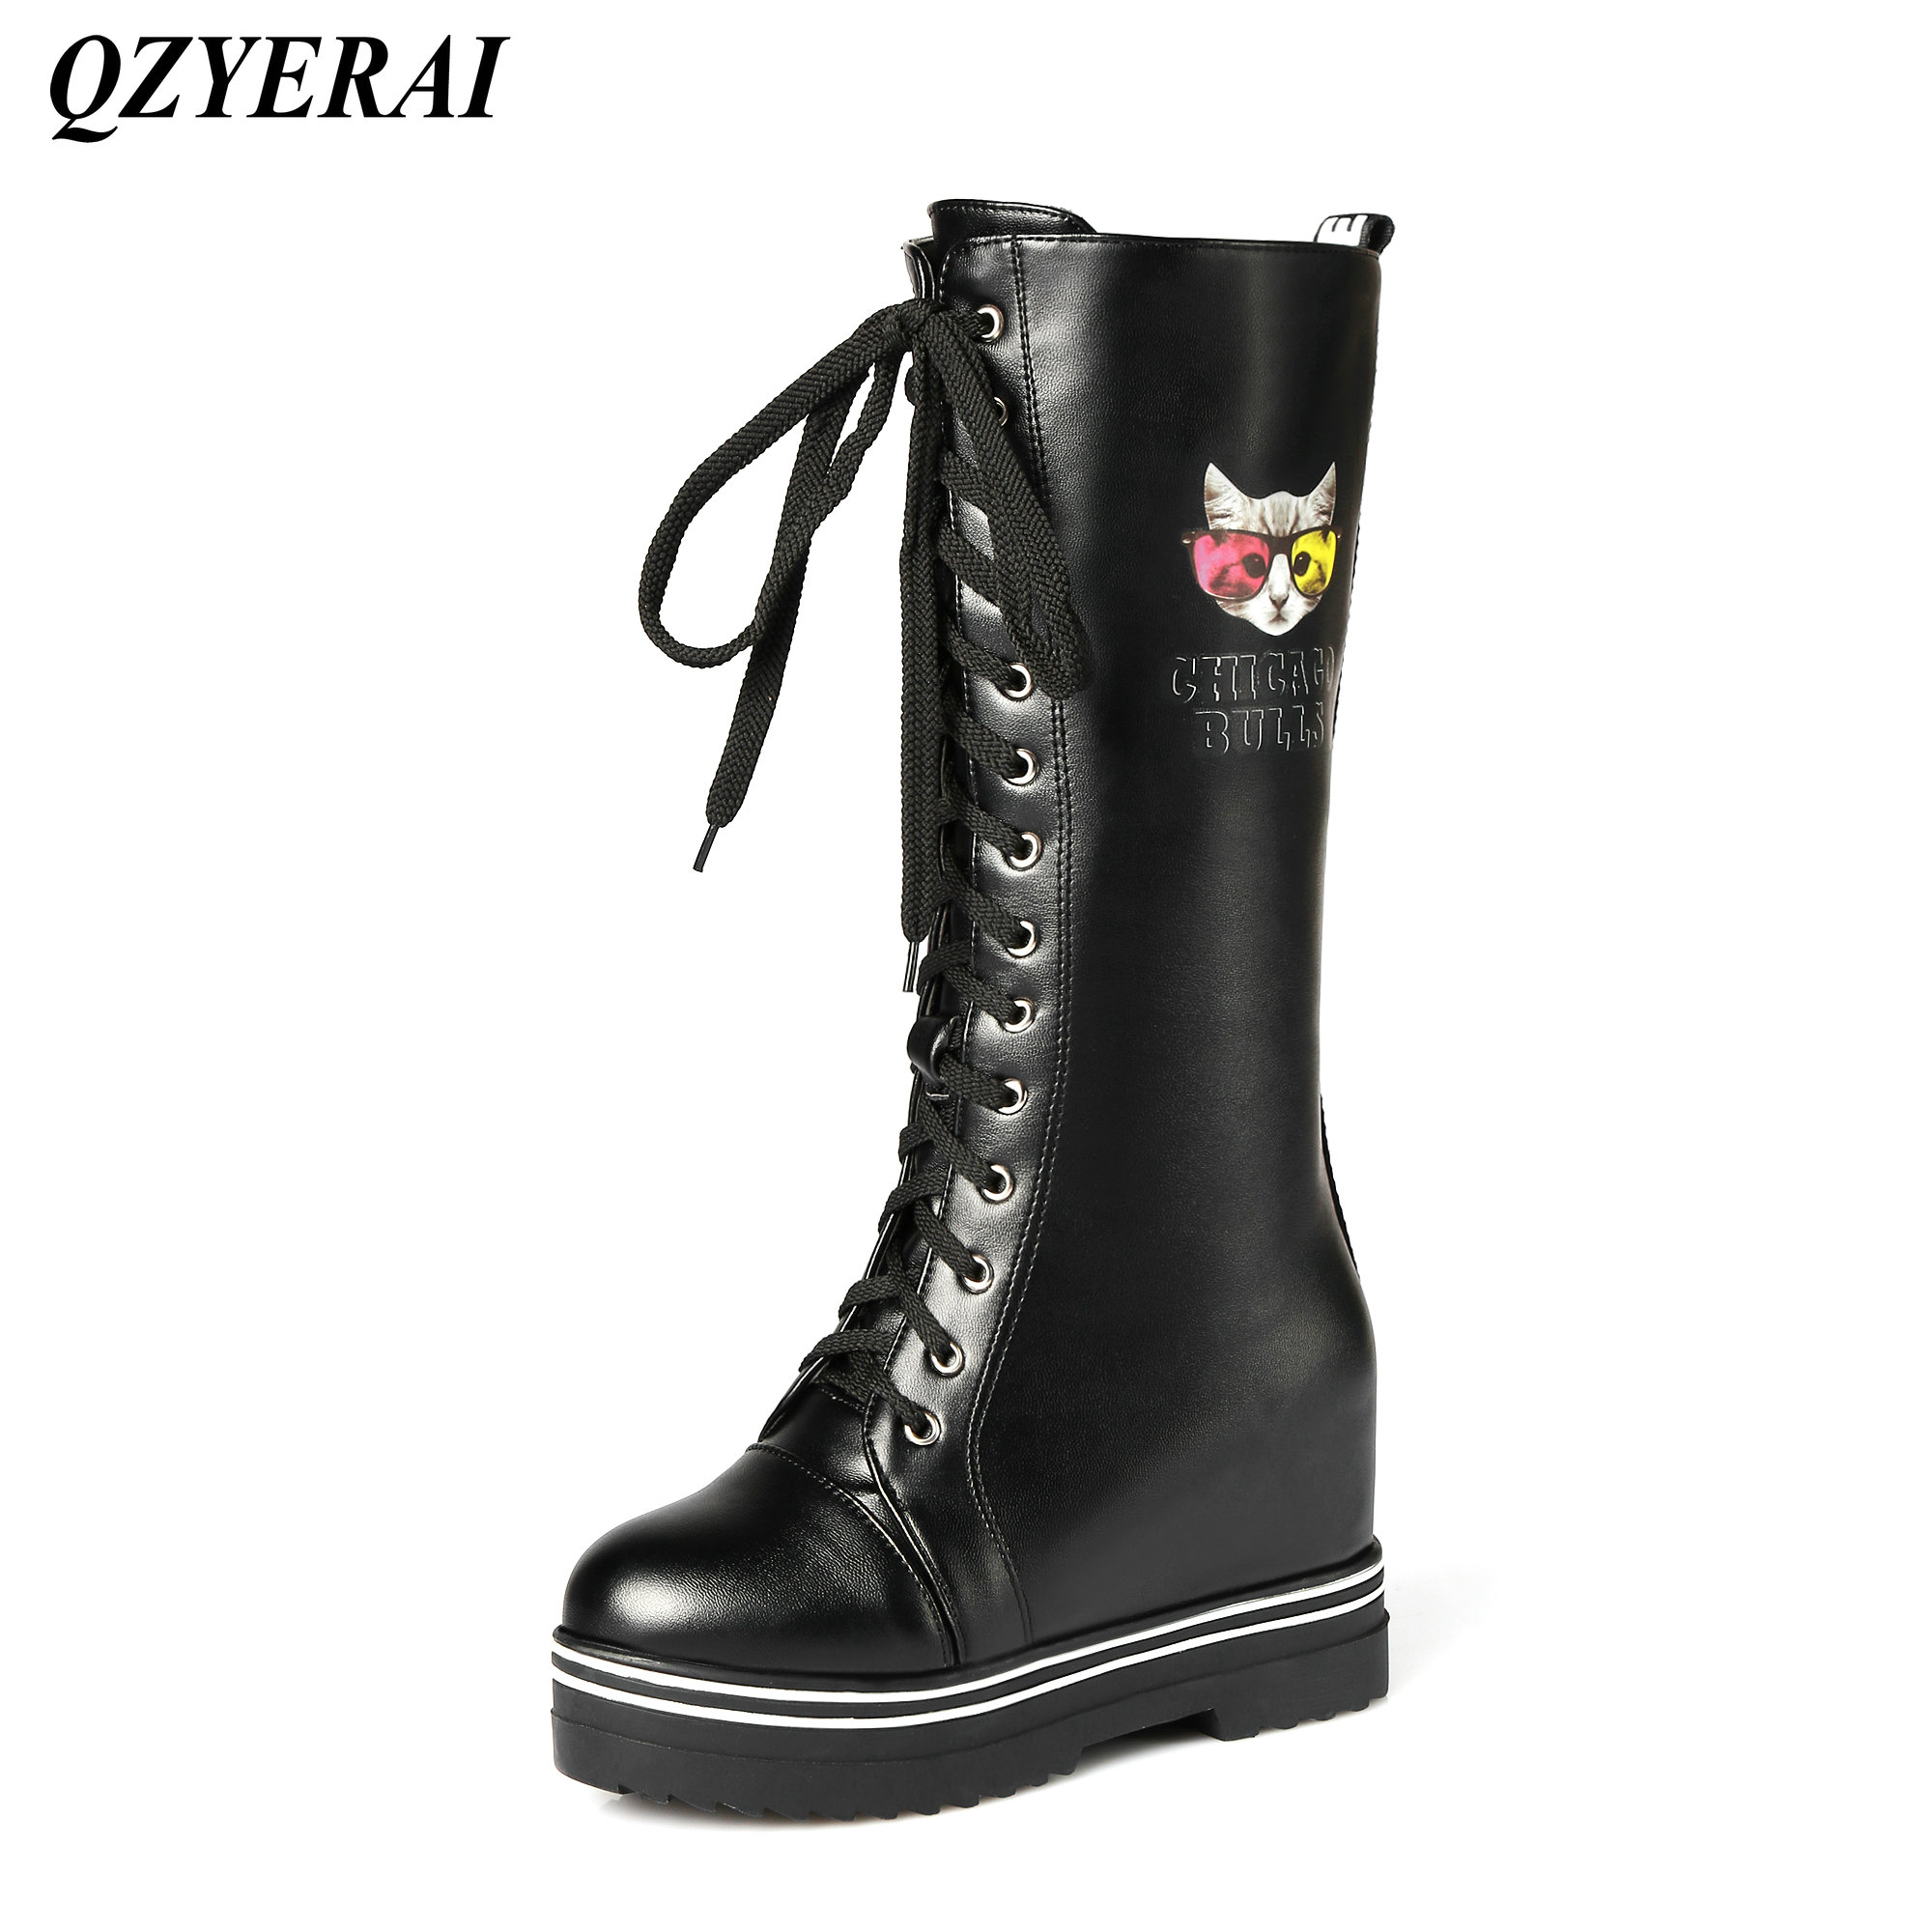 QZYERAI New ladies motorcycle boots thin band combination inner heigh female boots fashion font b womens